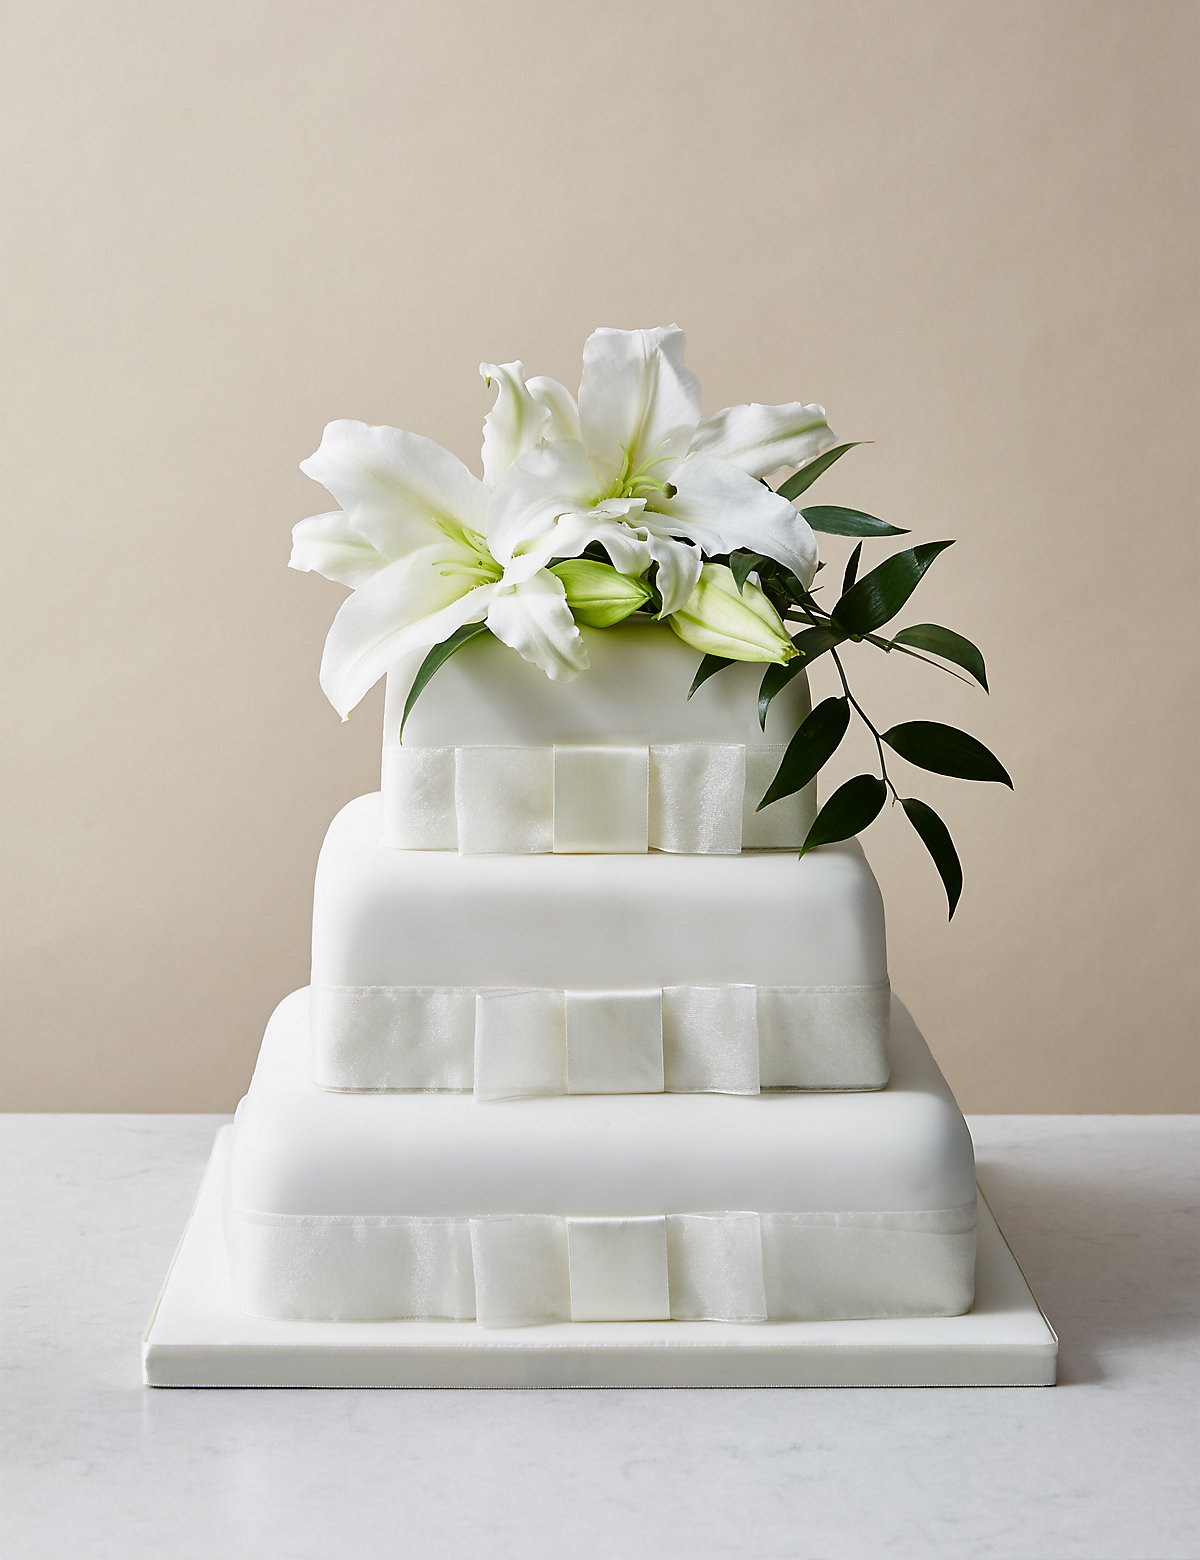 Elegant White Wedding Cake 3 Tier Assorted Gluten Free Cake with Chocolate